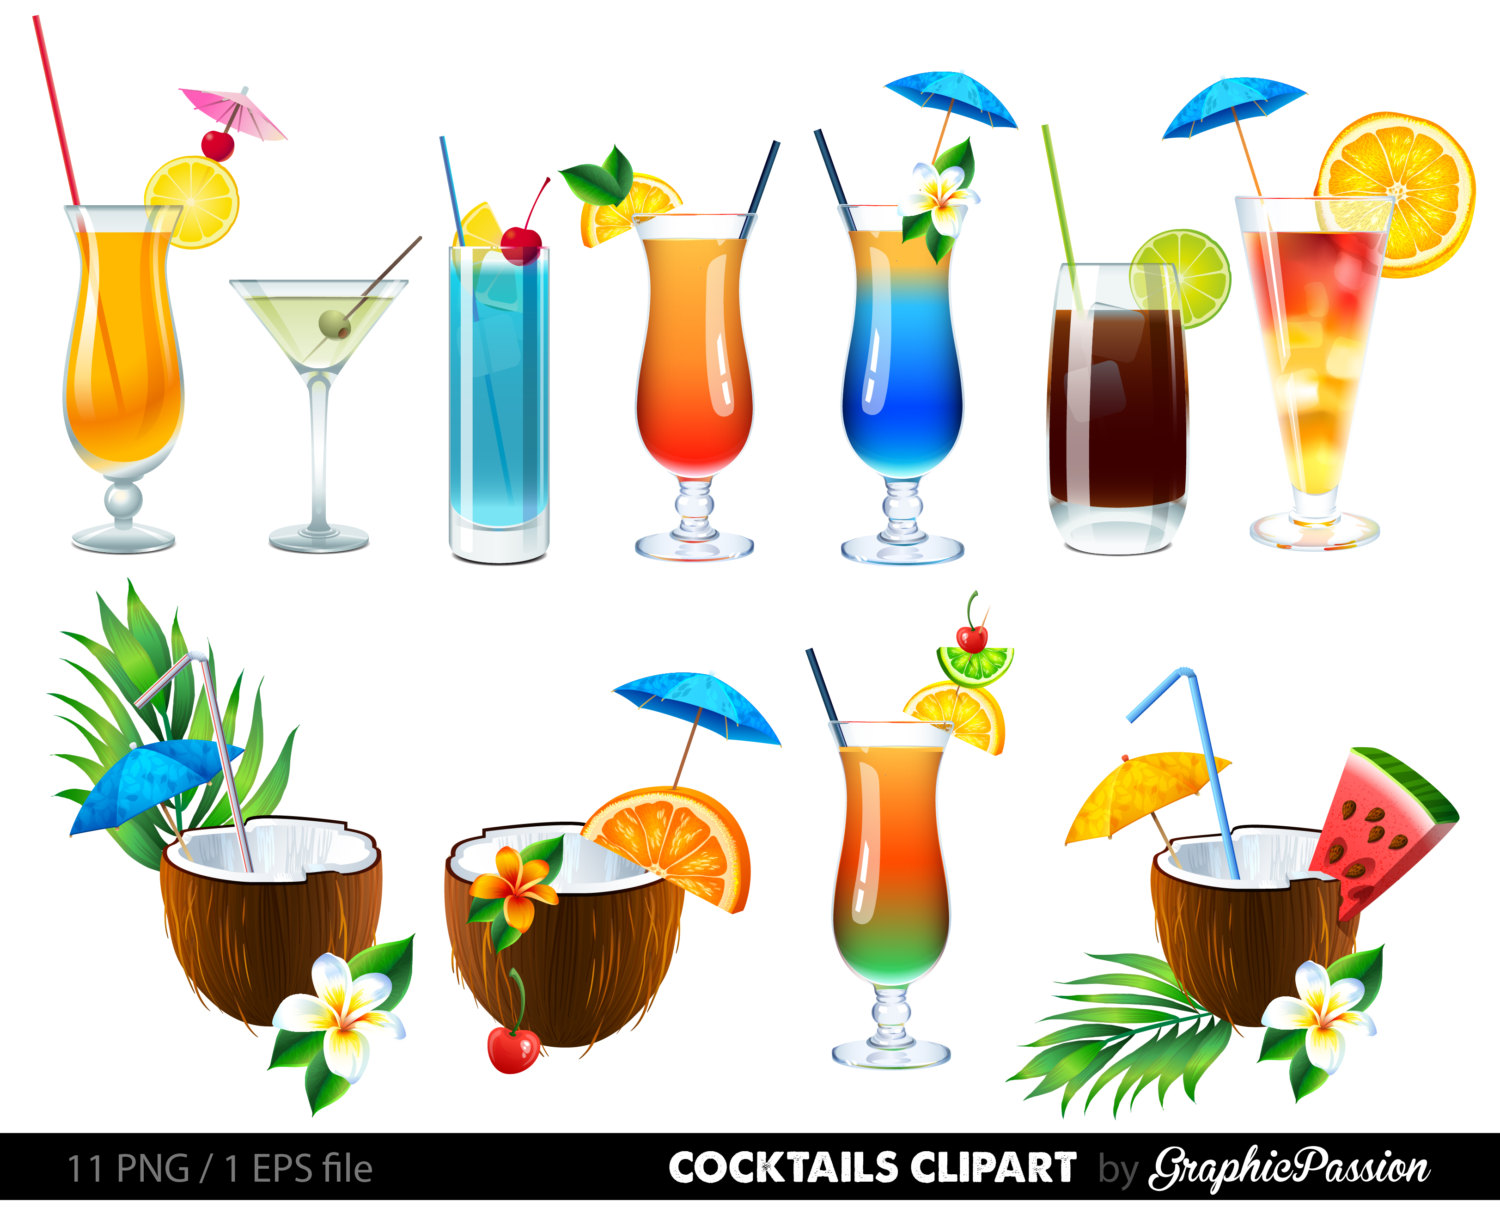 Cocktail clipart #12, Download drawings